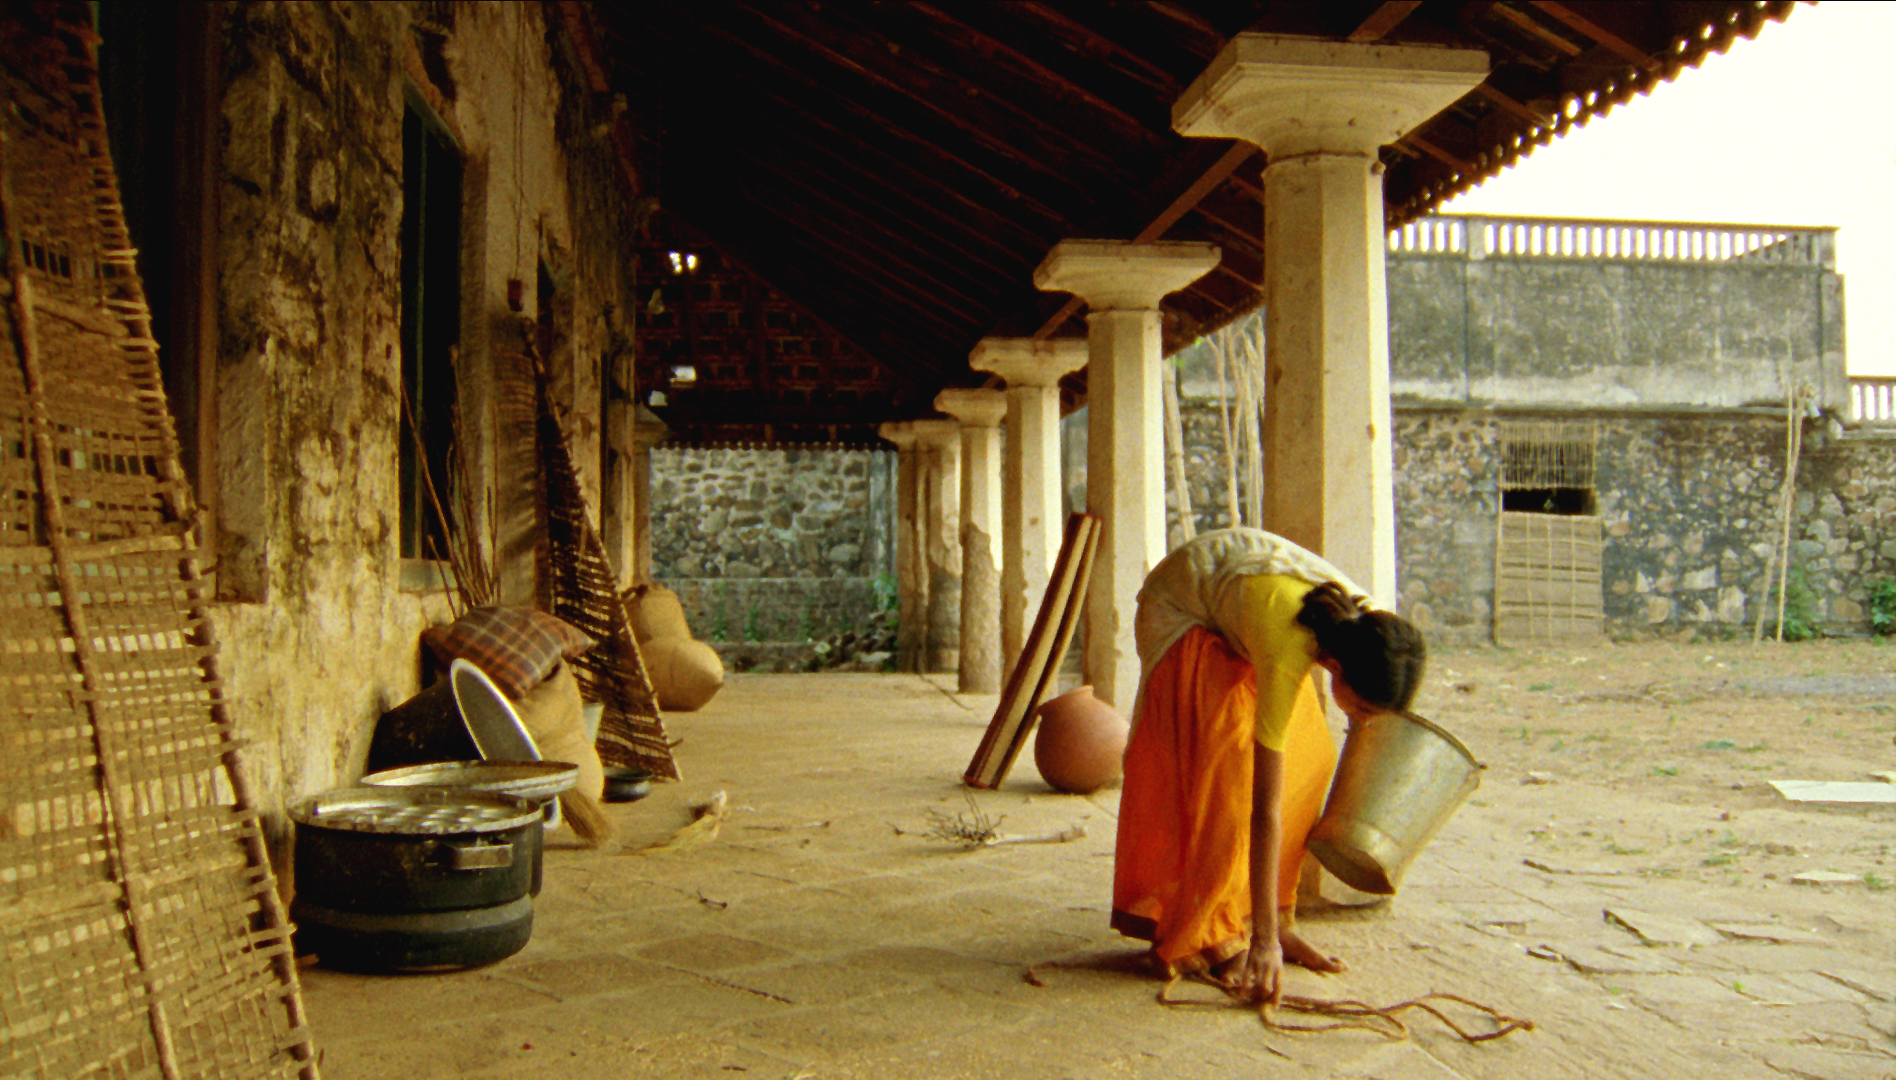 Vanaja singing and Cleaning yard.jpg